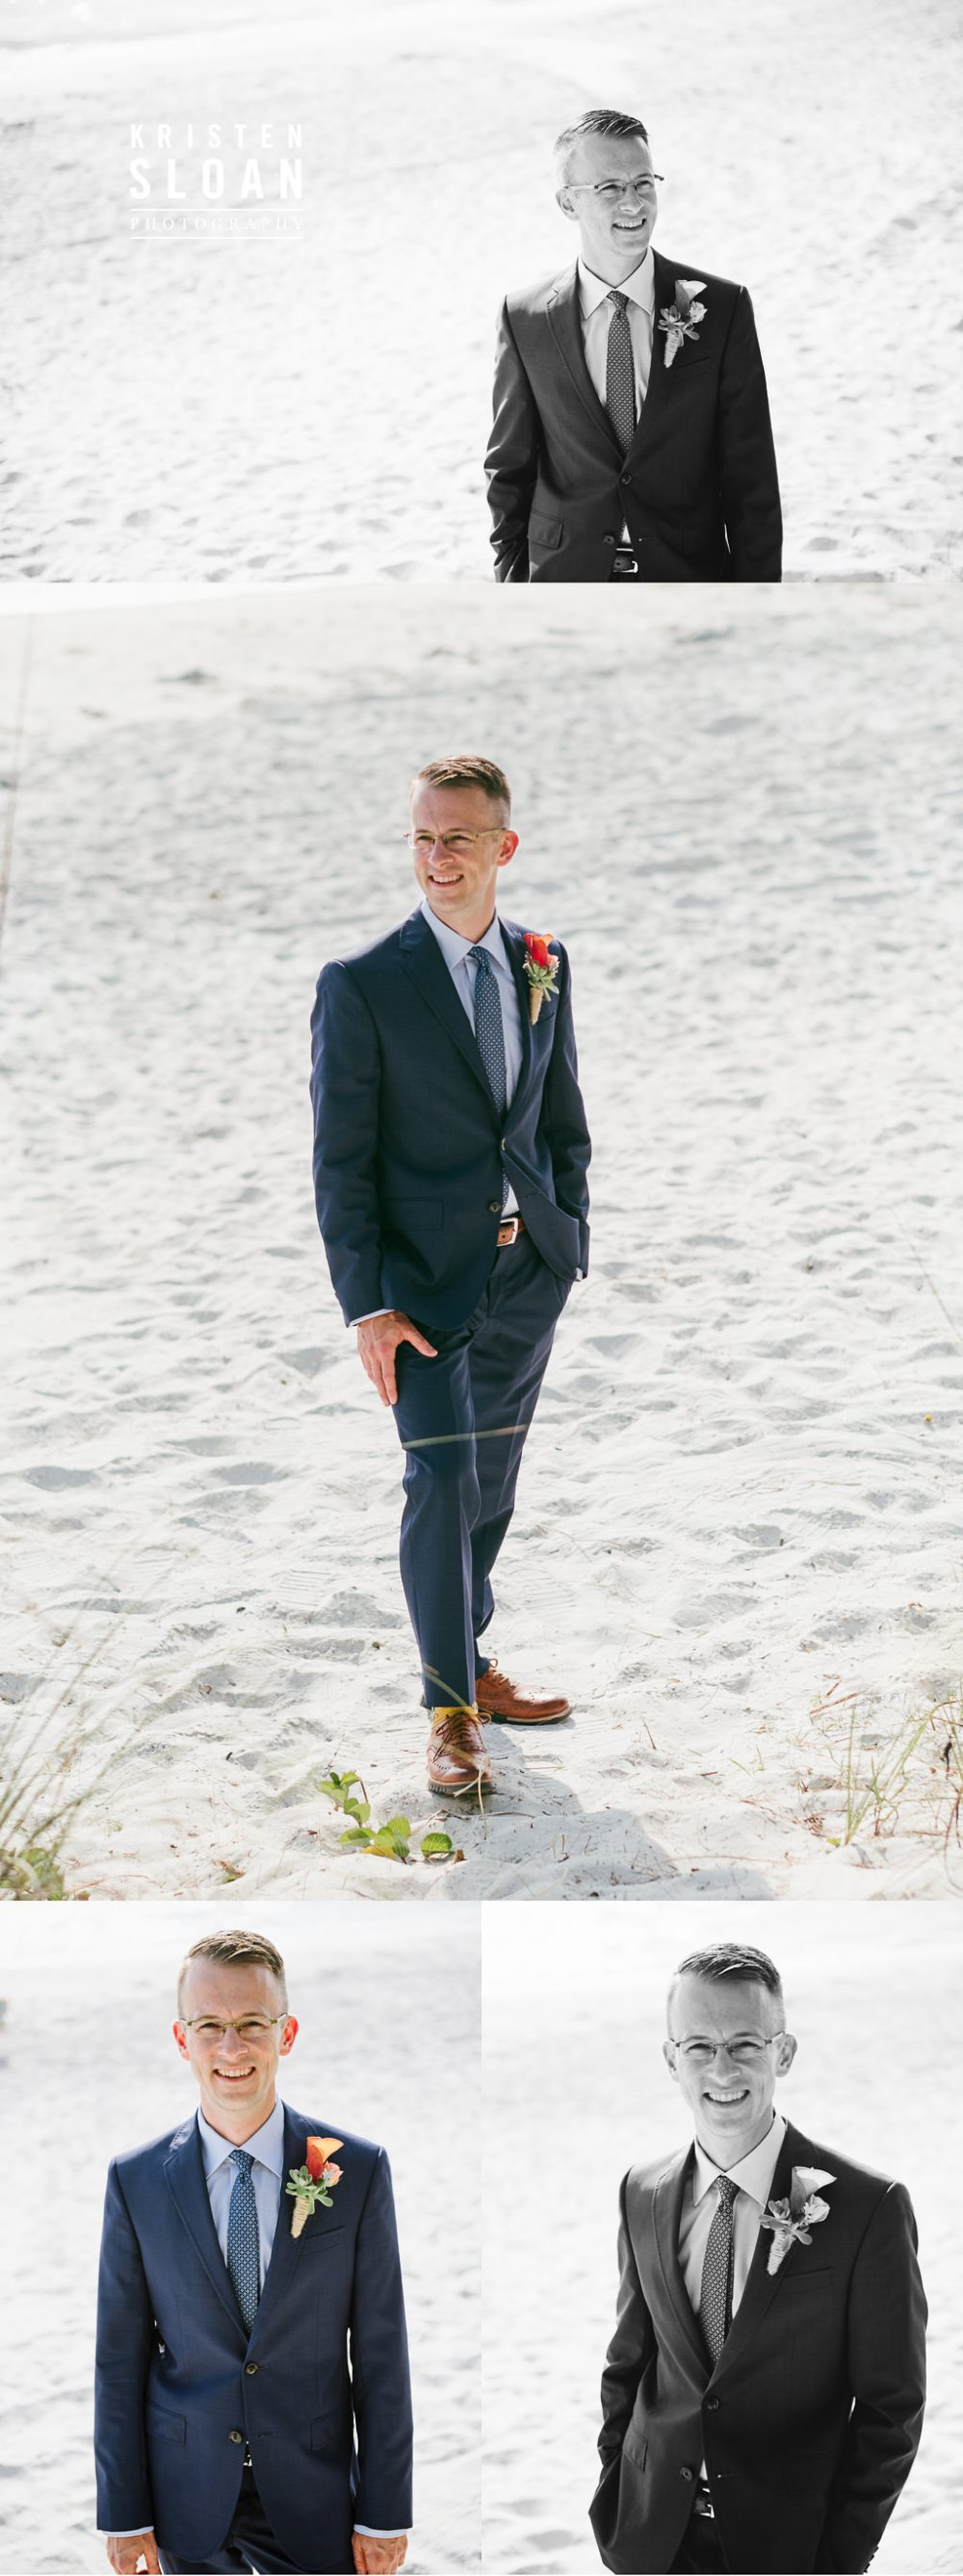 Treasure Island Wedding Photographer Kristen Sloan